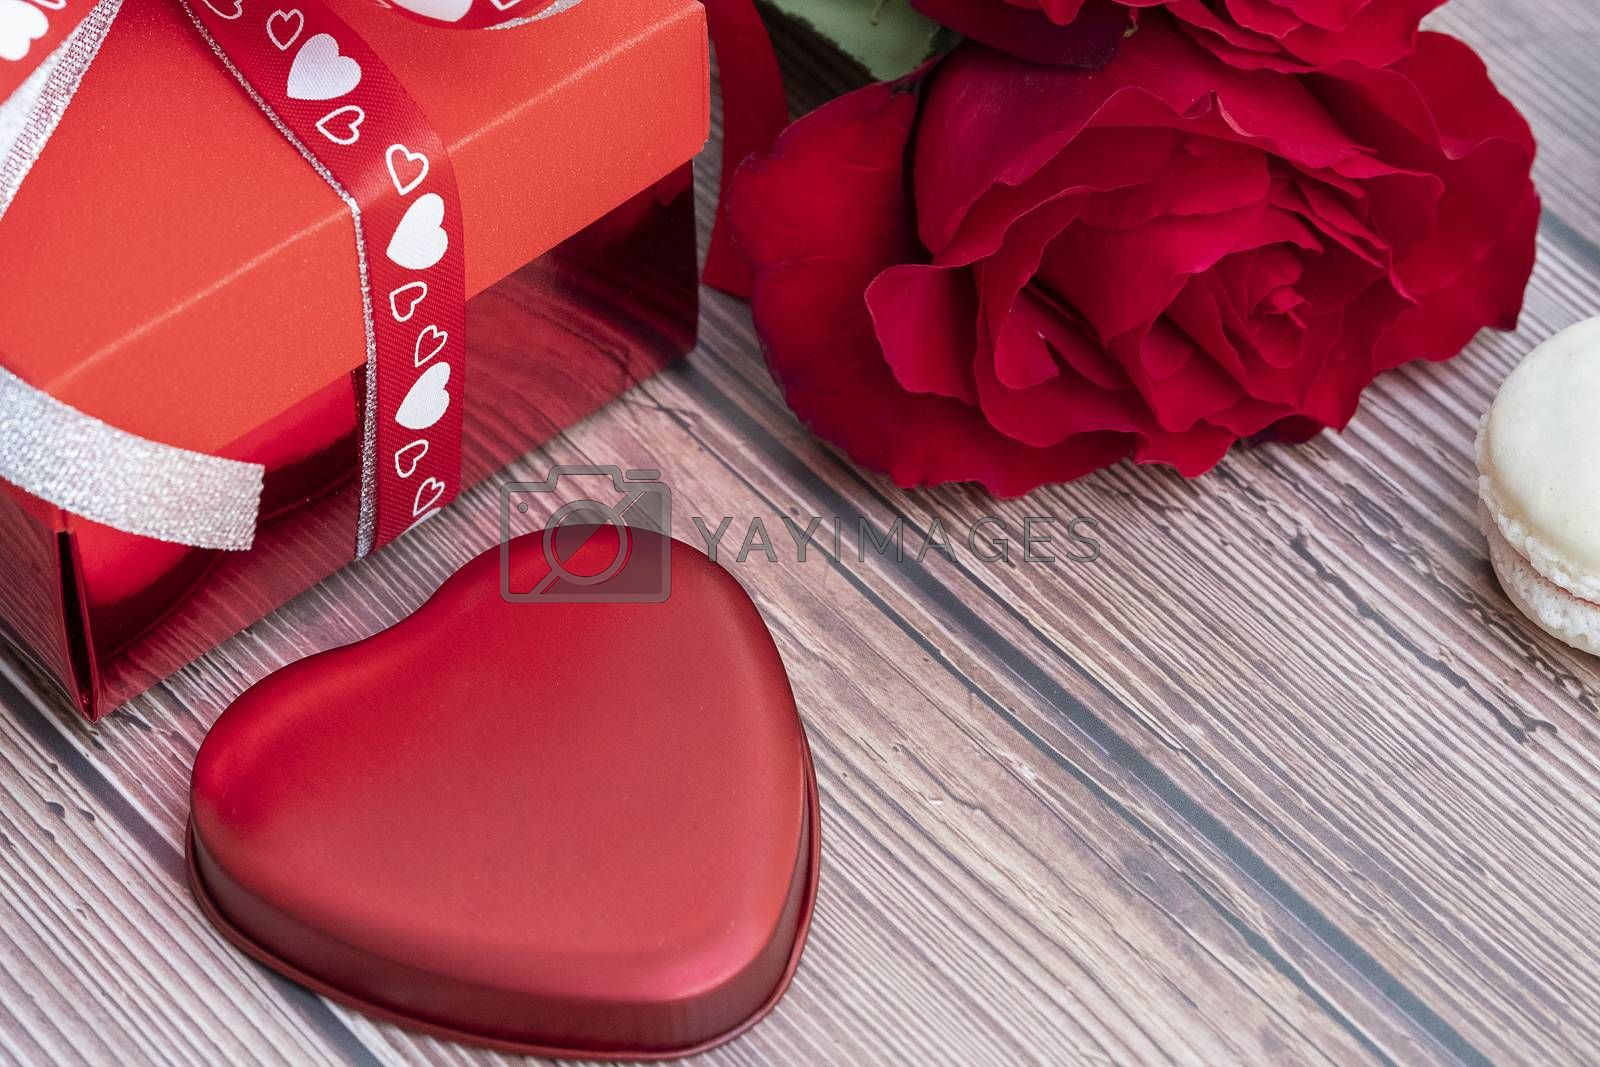 Present box, red rose, and a red heart-shaped metal piece by Nawoot